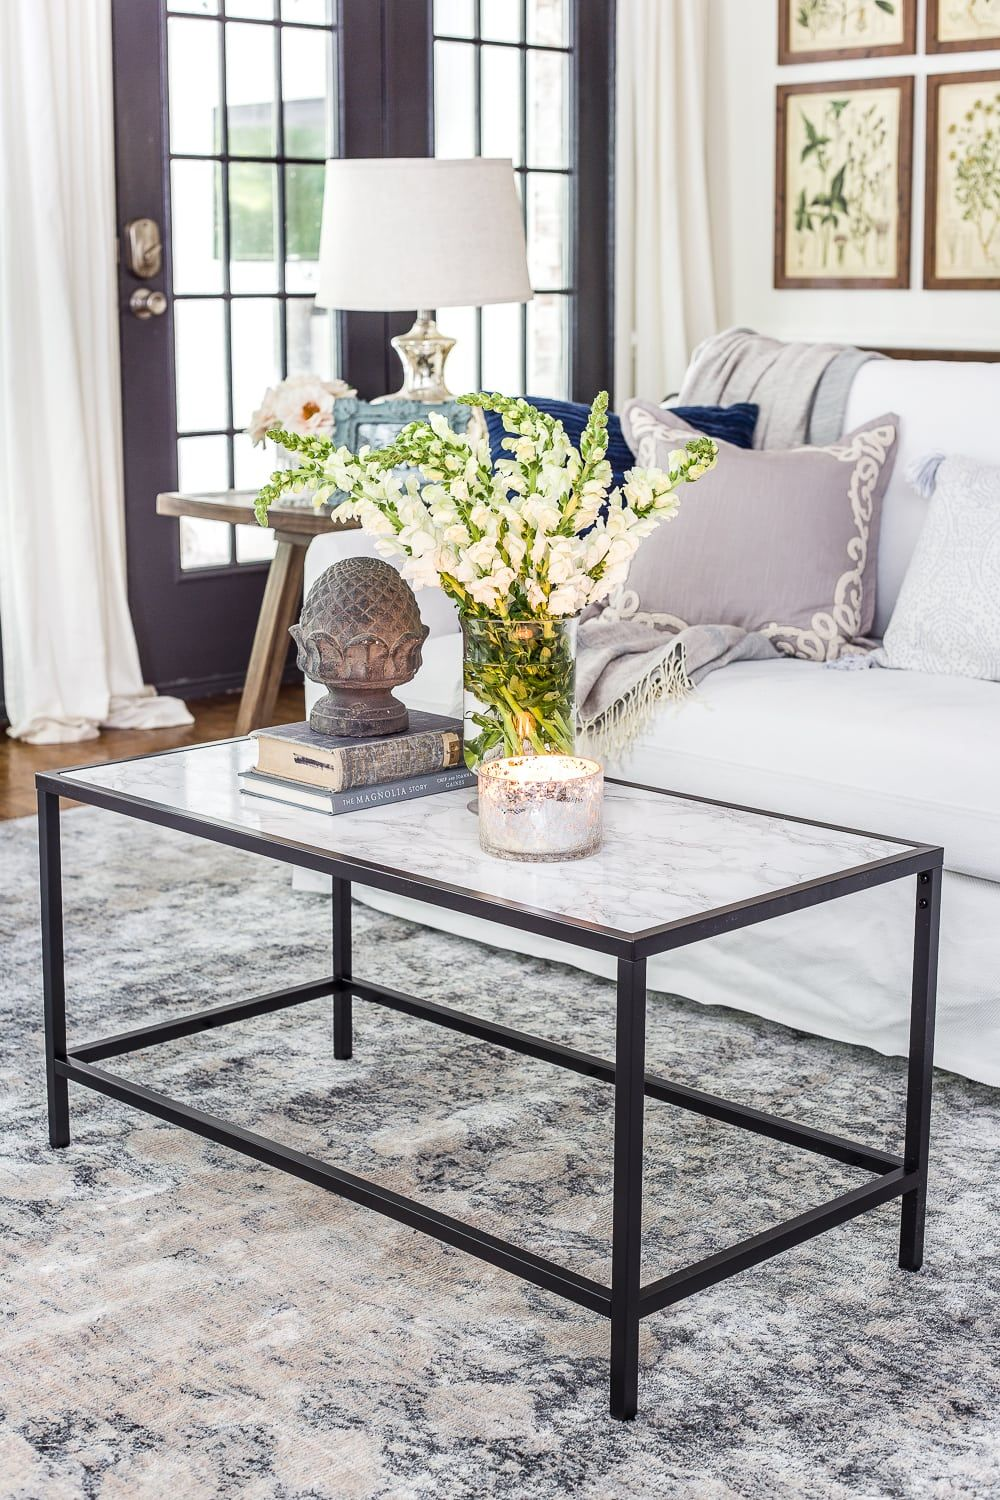 Faux Marble Top Coffee Table Marble Top Coffee Table Marble Tables Living Room Ikea Coffee Table [ 1500 x 1000 Pixel ]